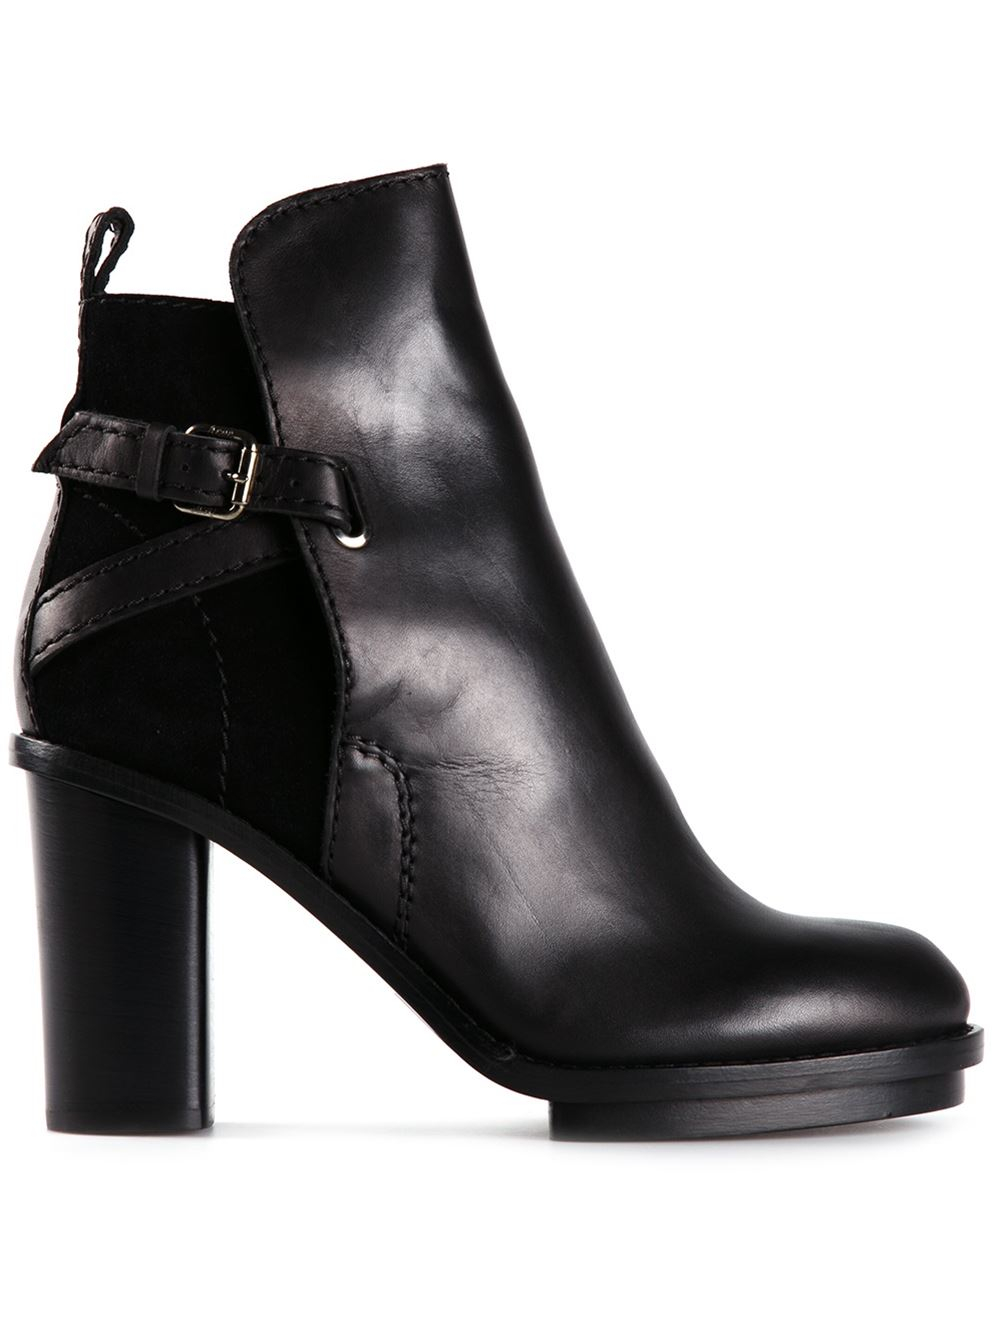 0a14bdf61d5d Lyst - Acne Studios  Cypress  Ankle Boots in Black